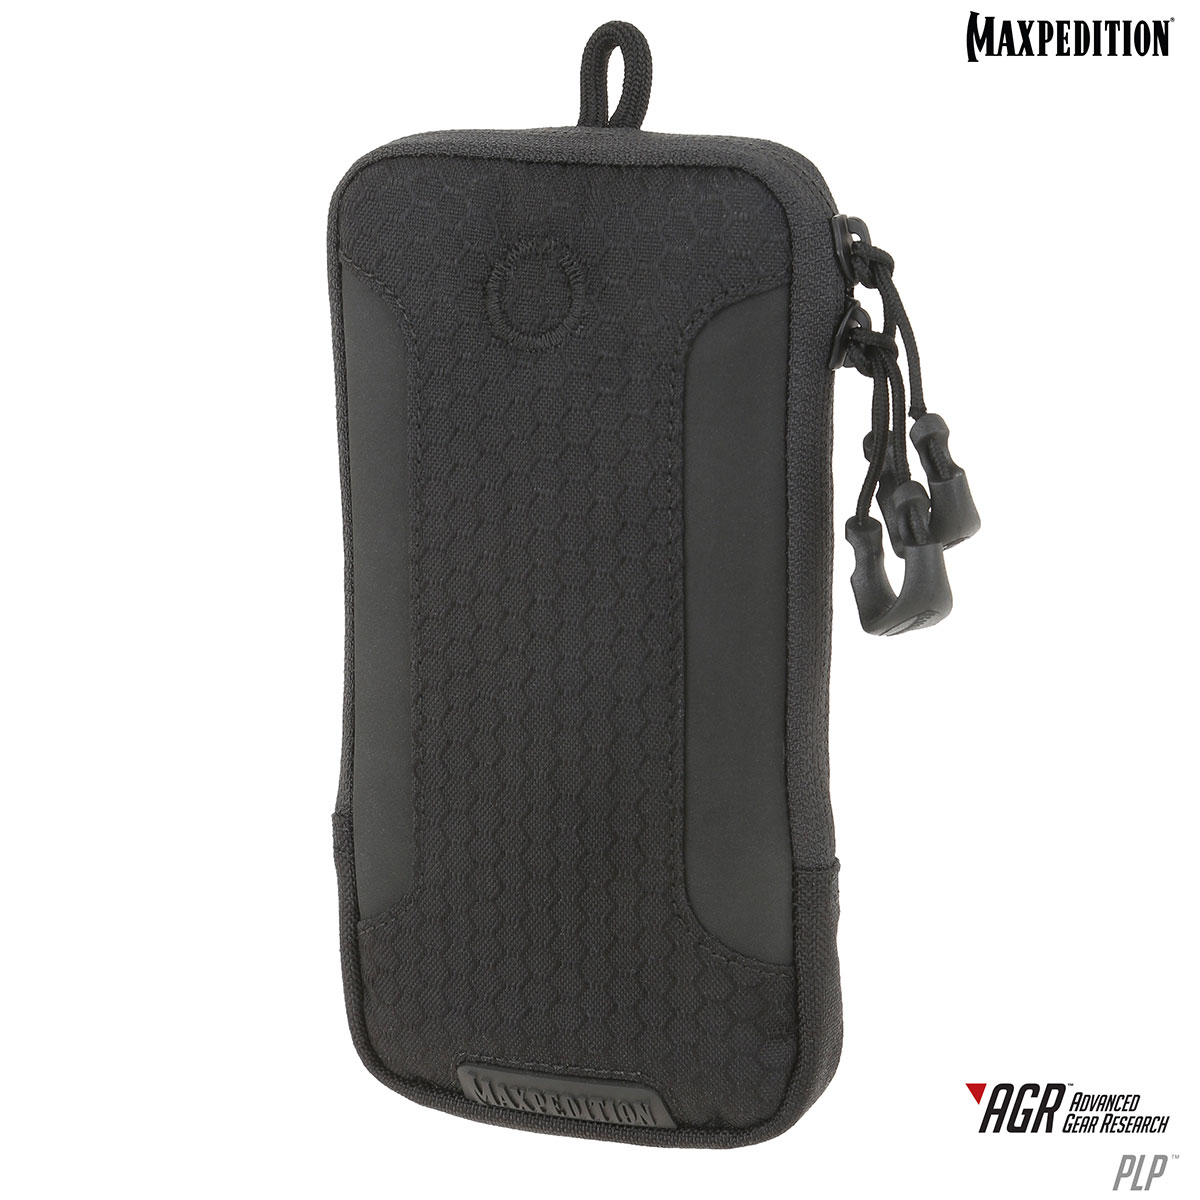 Maxpedition PLPBLK AGR Advanced Gear Research PLP iPhone 6s Plus Pouch, Black